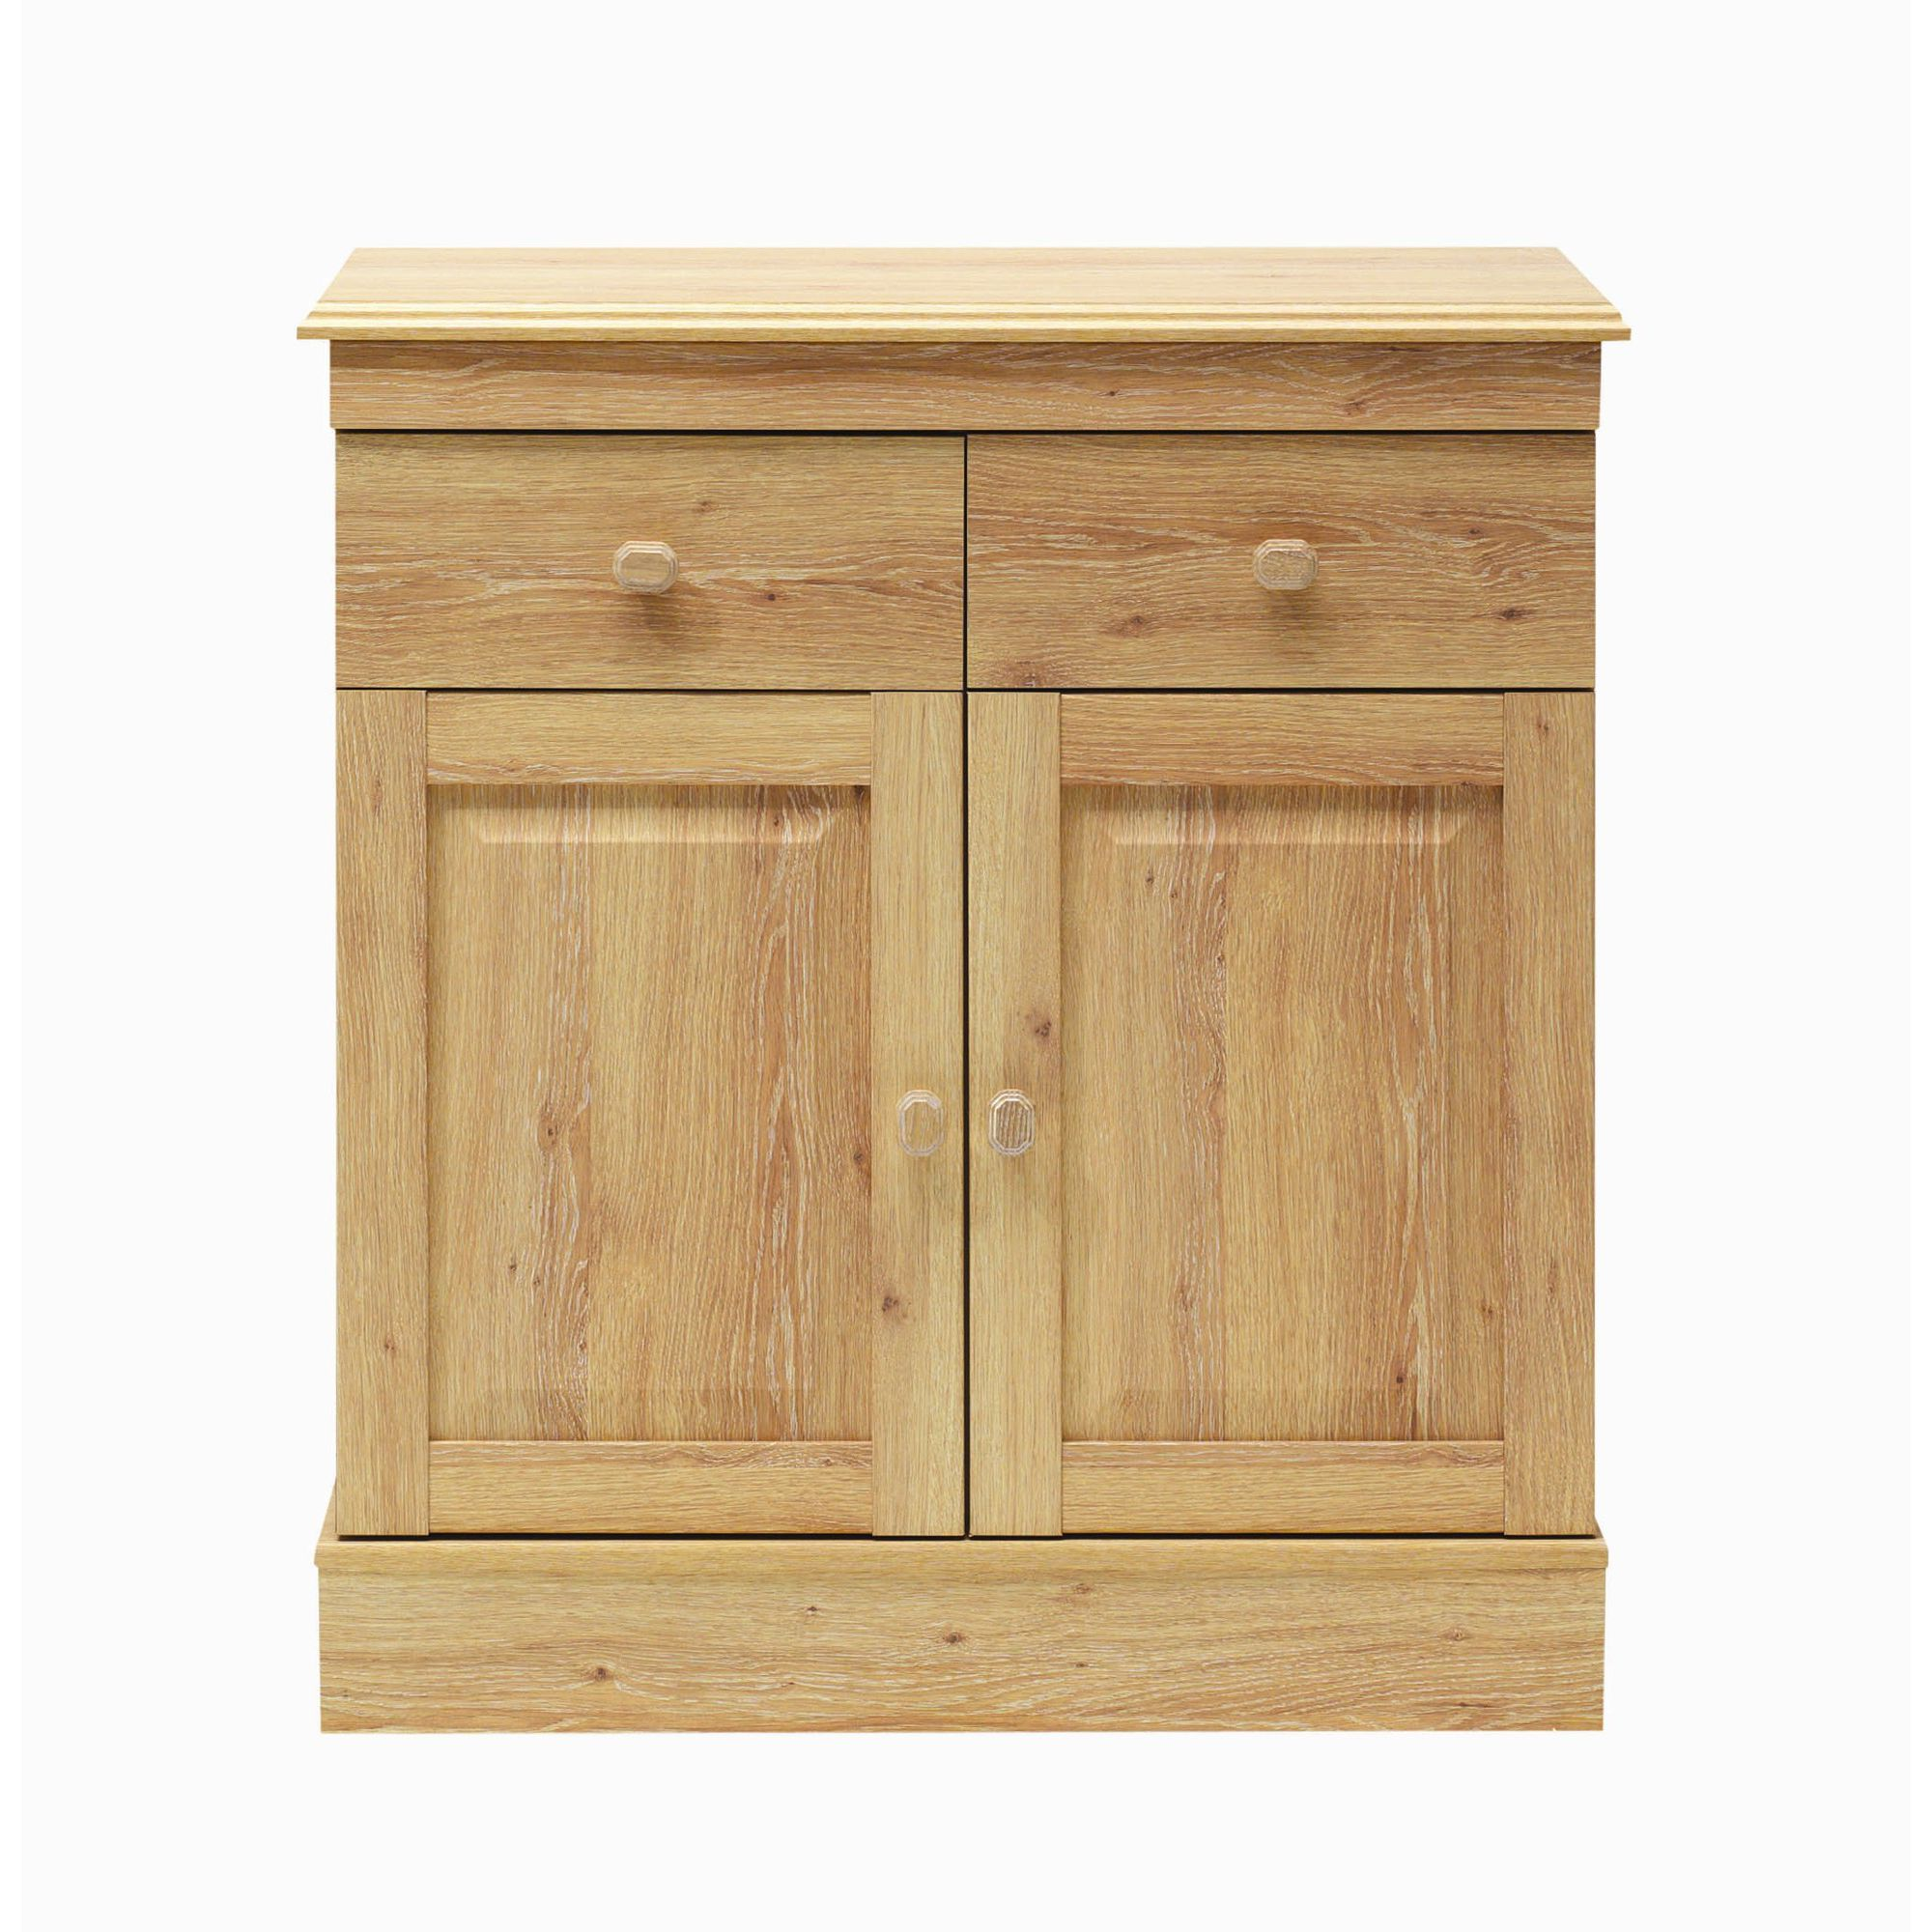 Caxton Driftwood Two Door Sideboard in Limed Oak at Tesco Direct